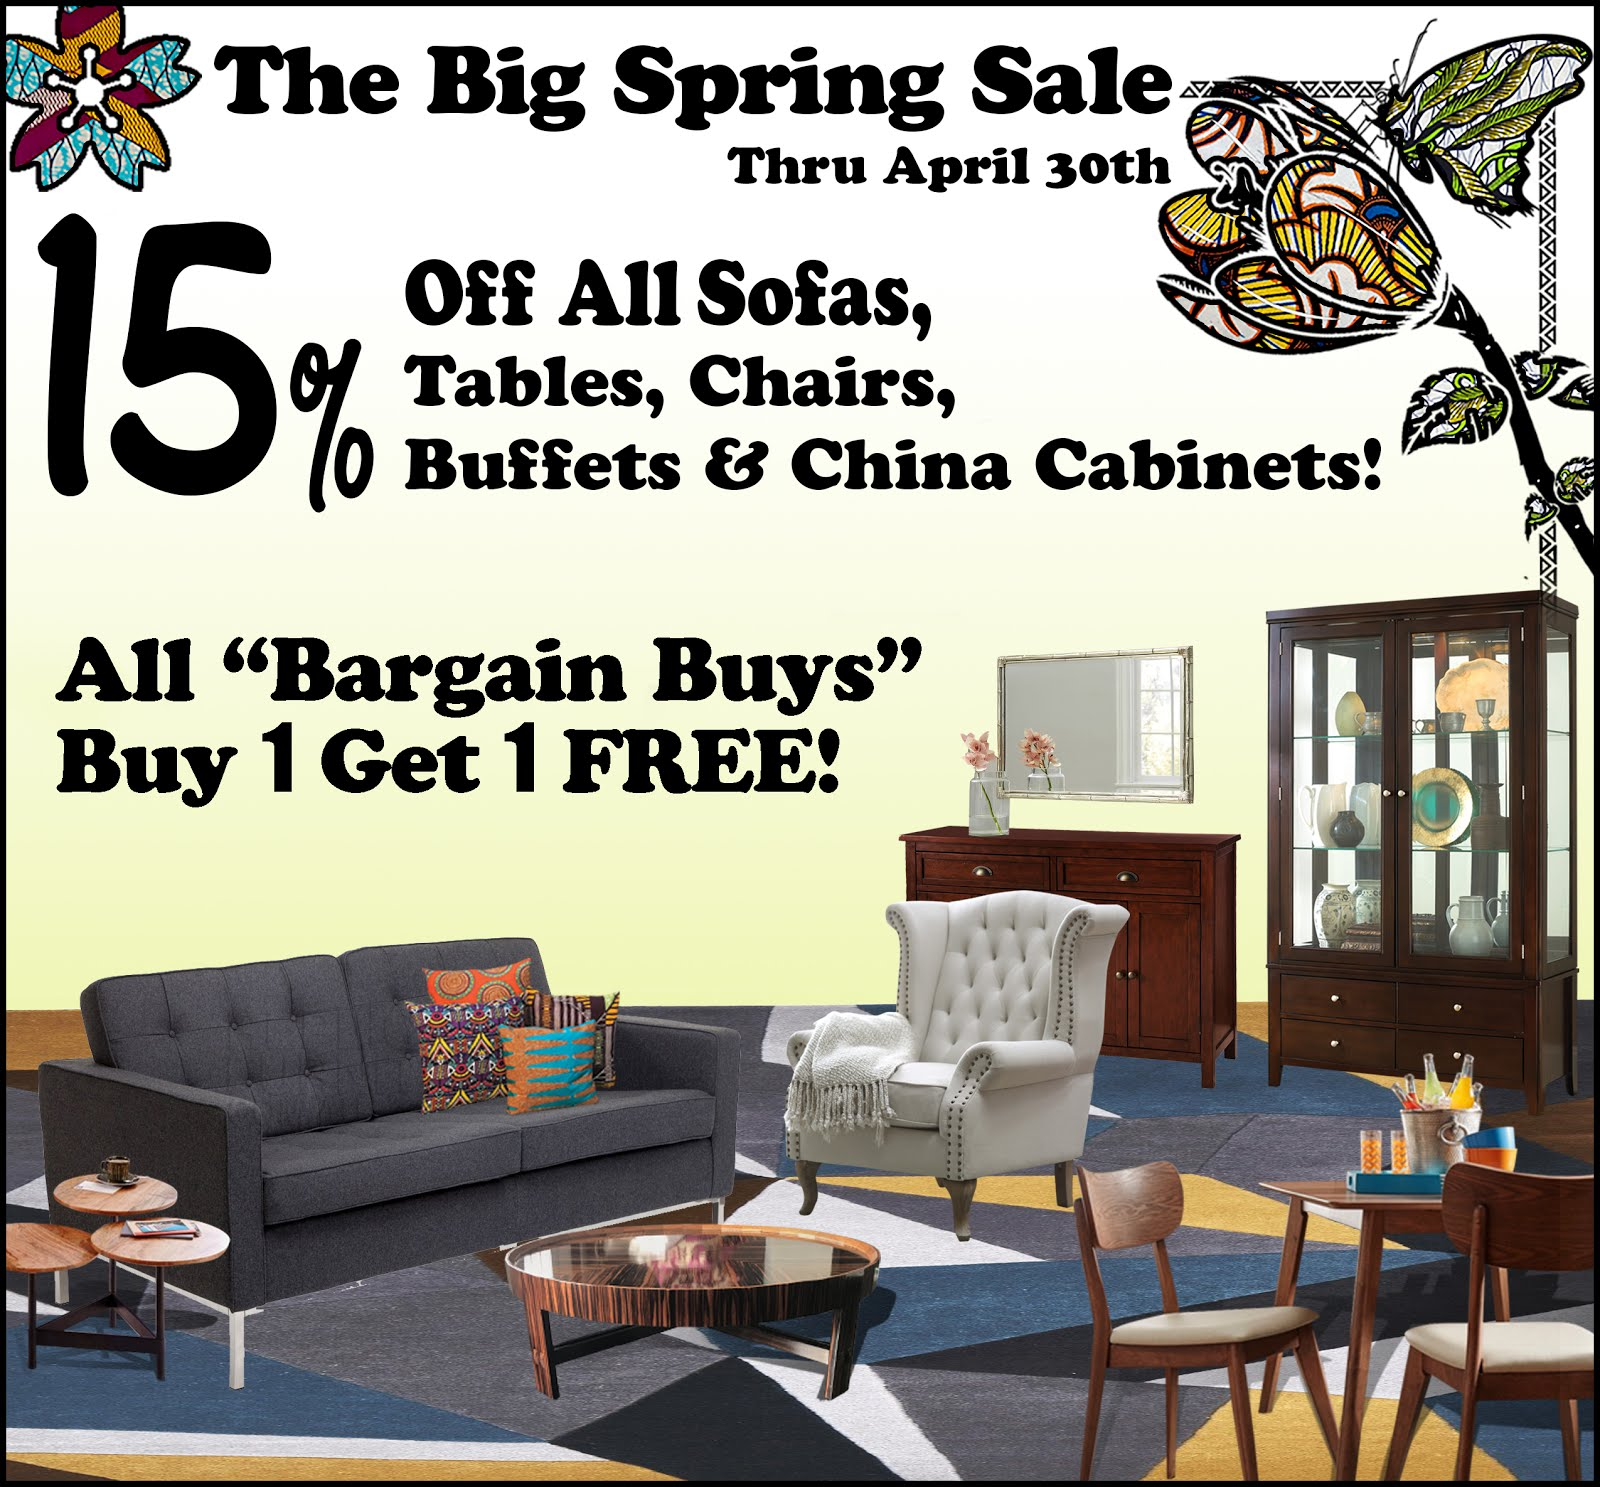 The Big Spring Sale!